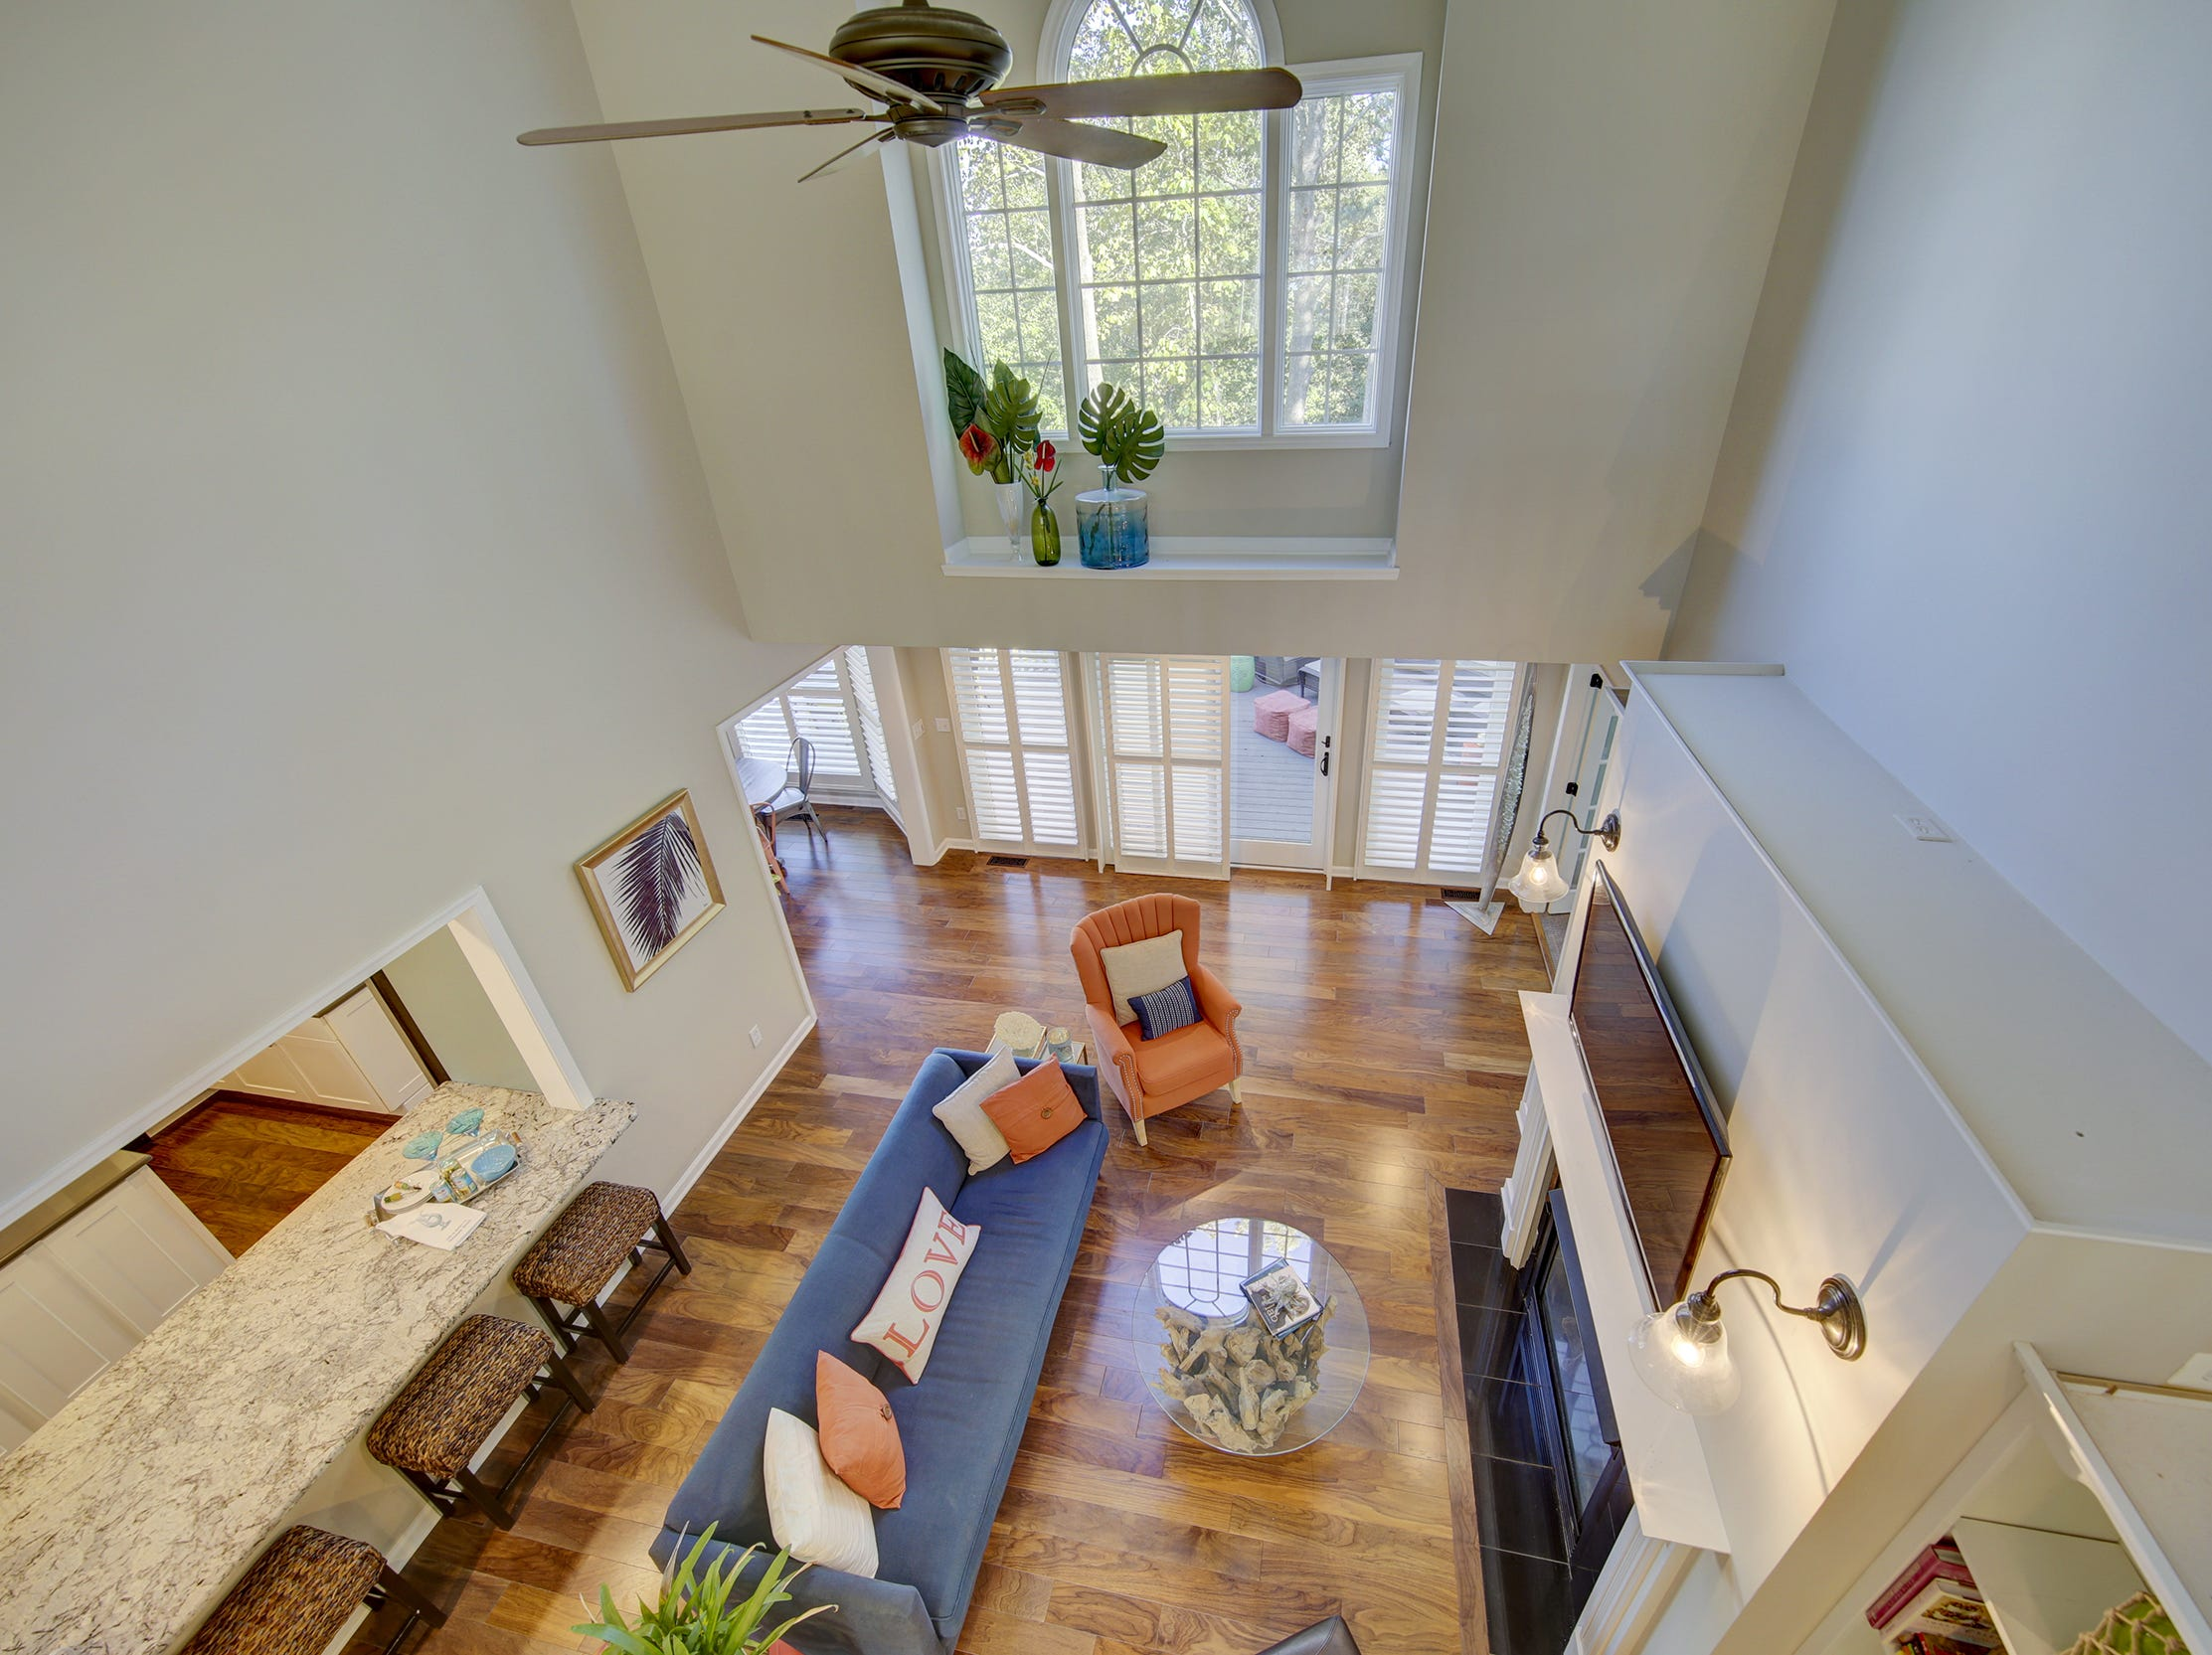 The gathering room at 204 Lakeview Shores in Rehoboth Beach is two stories tall and adjoins the kitchen and a screened porch.